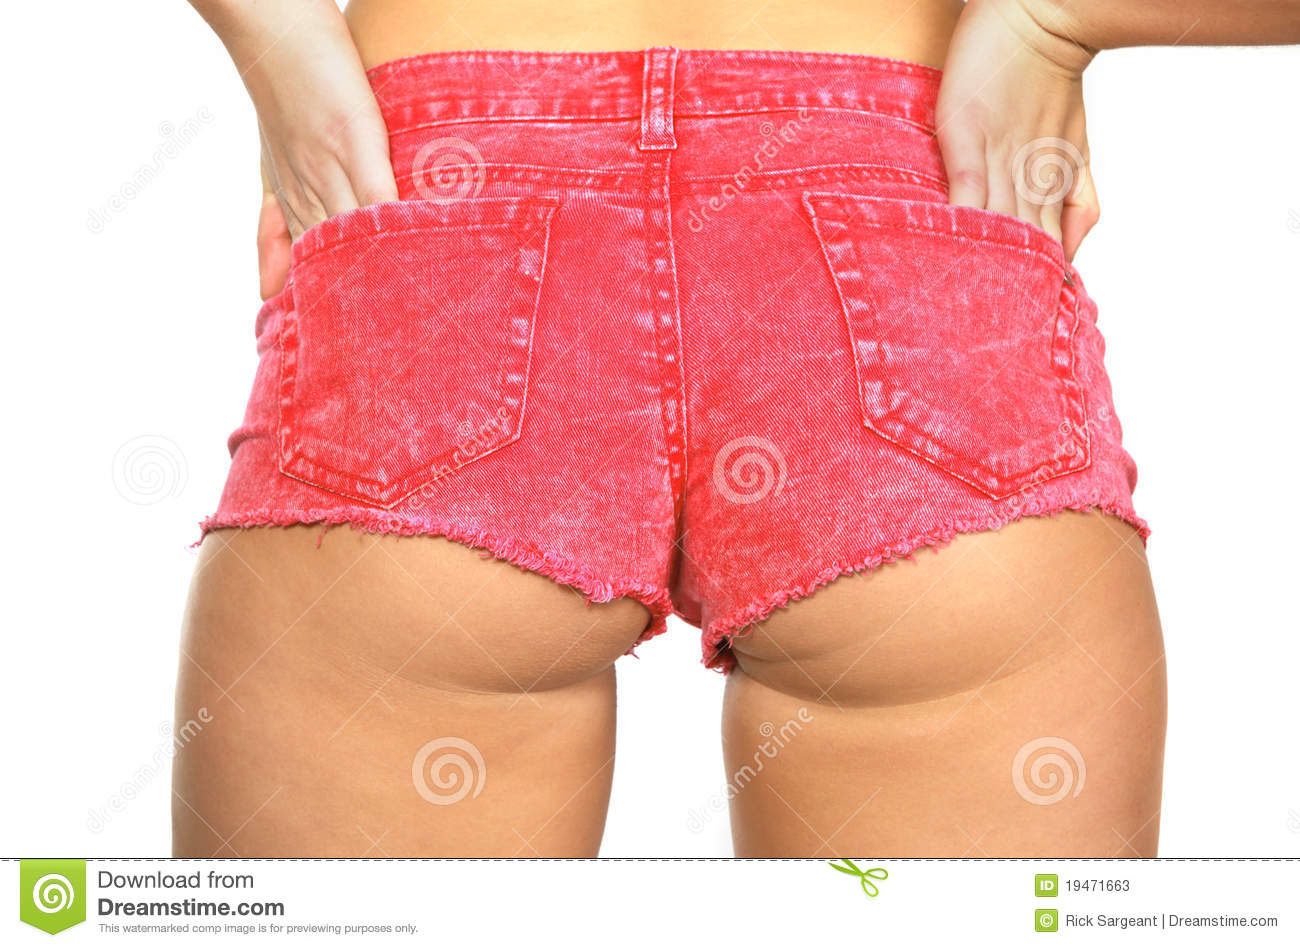 Buy New Pink Shorts for Women at Macy's. Shop for Womens Shorts Online at gothicphotos.ga Free Shipping Available!